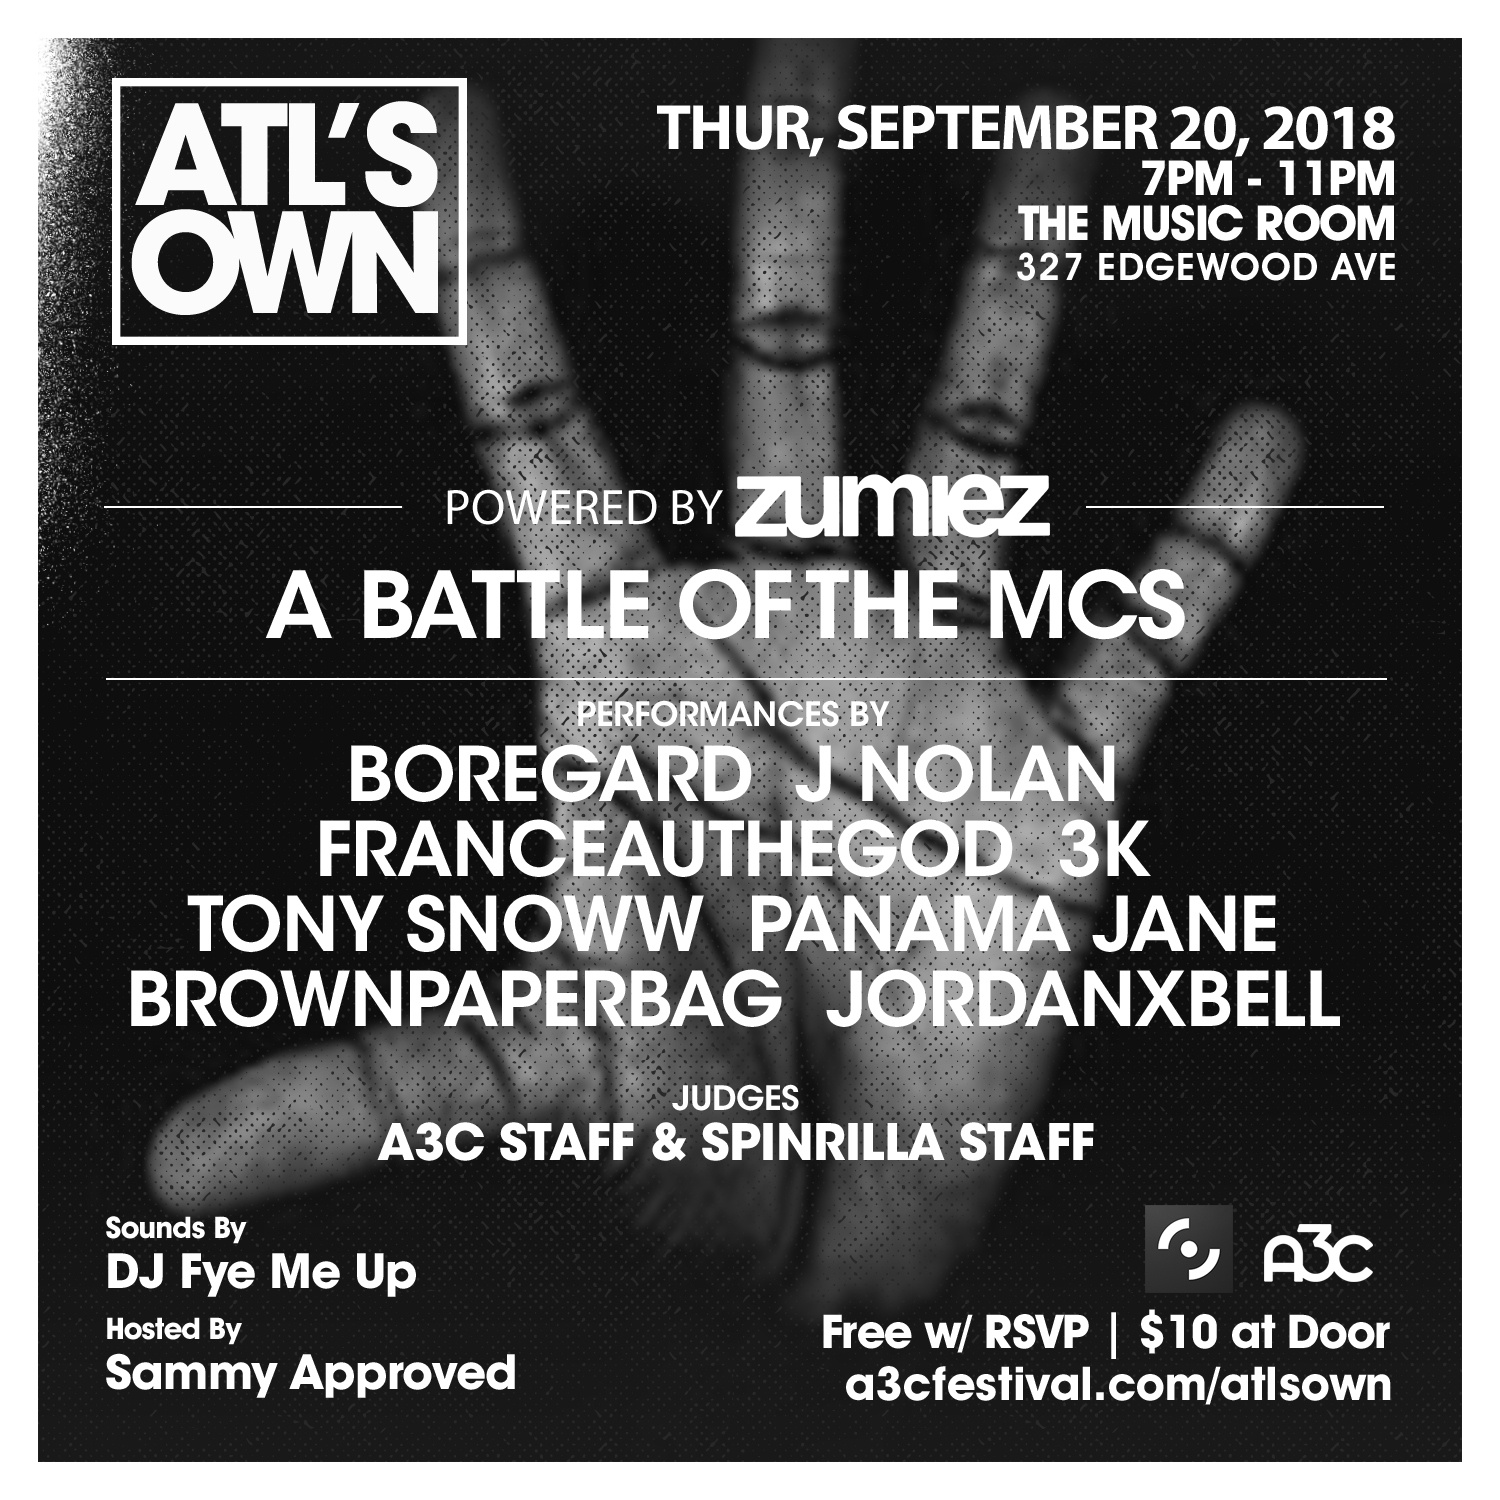 Battle of the MCs - ATLs Own-Recovered